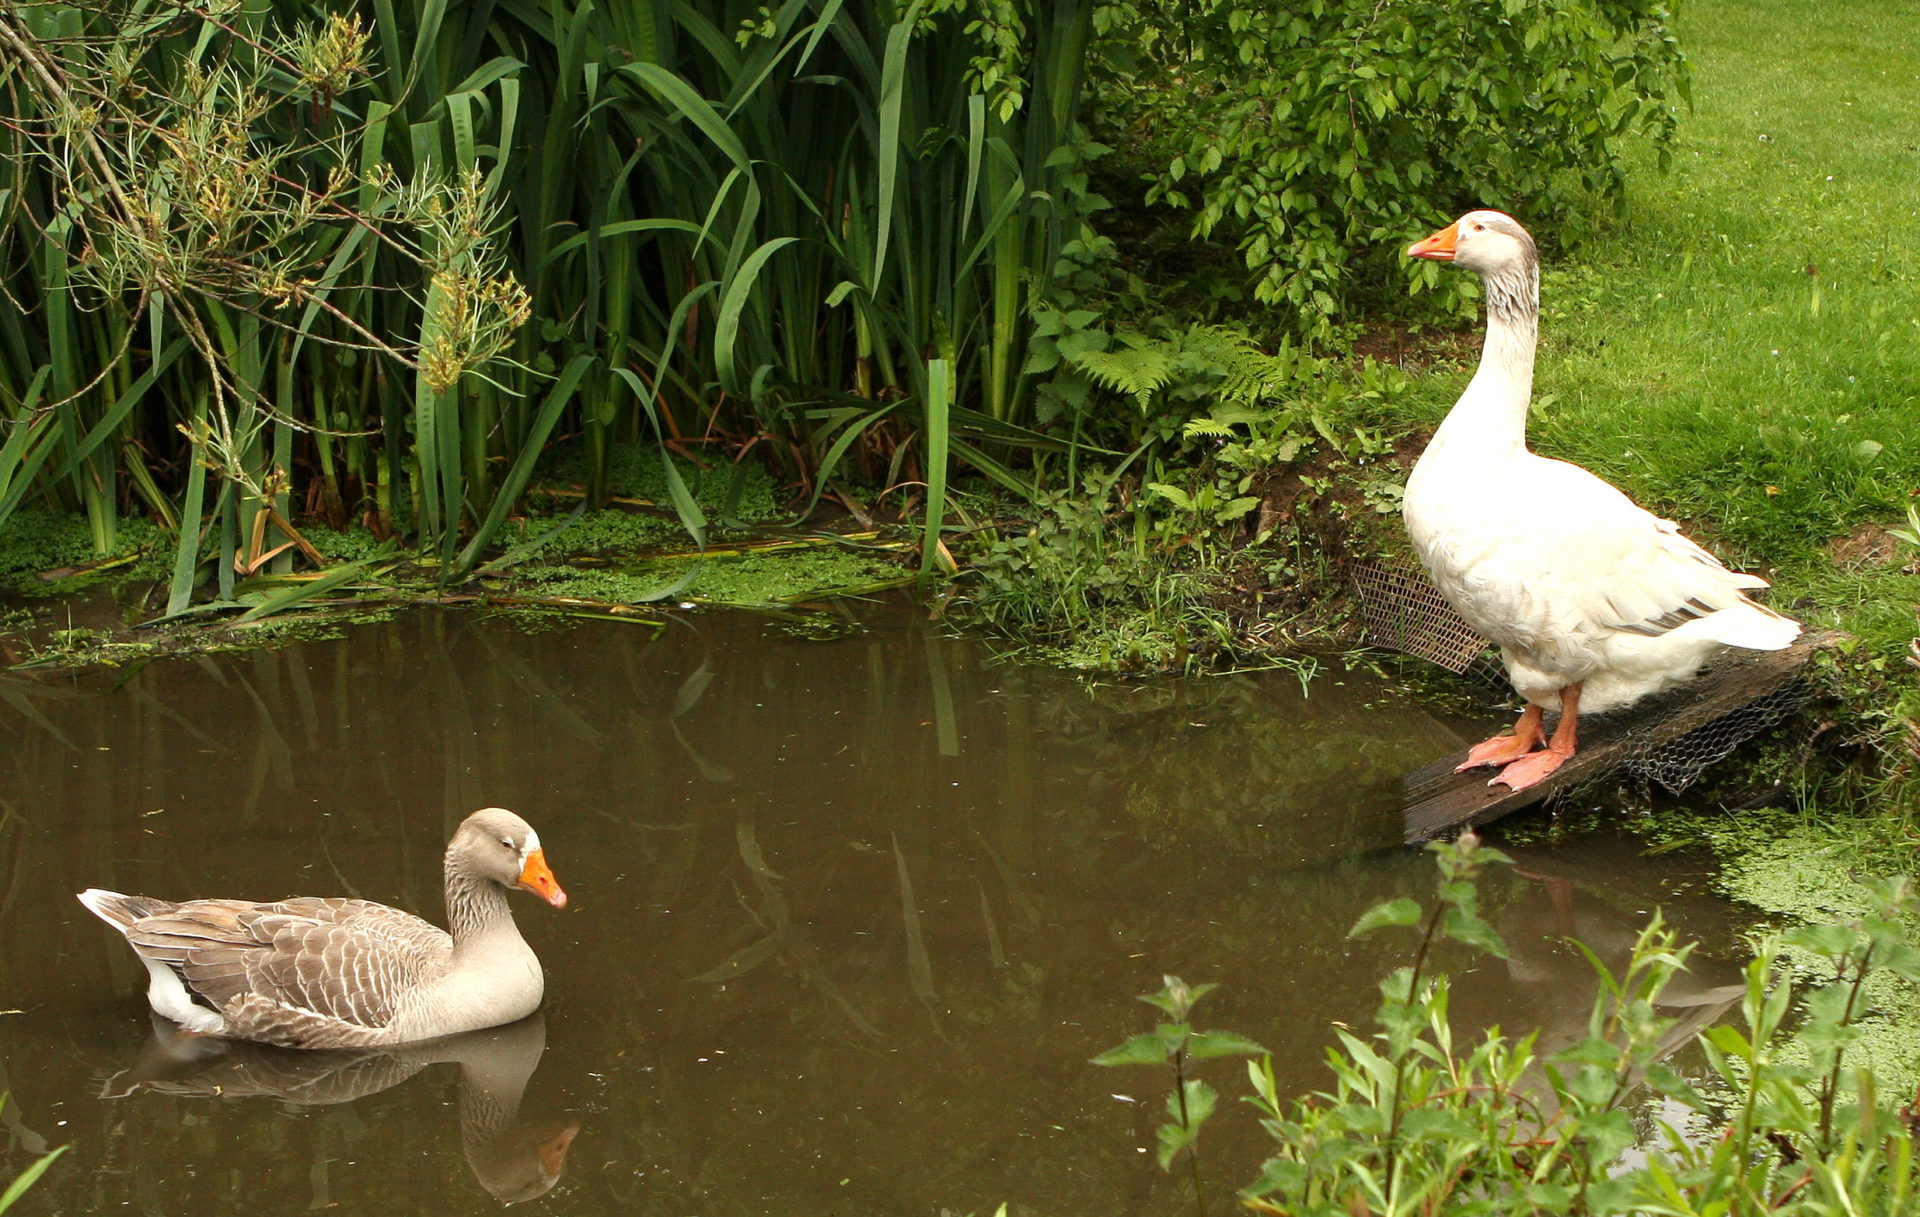 A greylag couple at the Mythic Gardens. Ideal watchdogs.